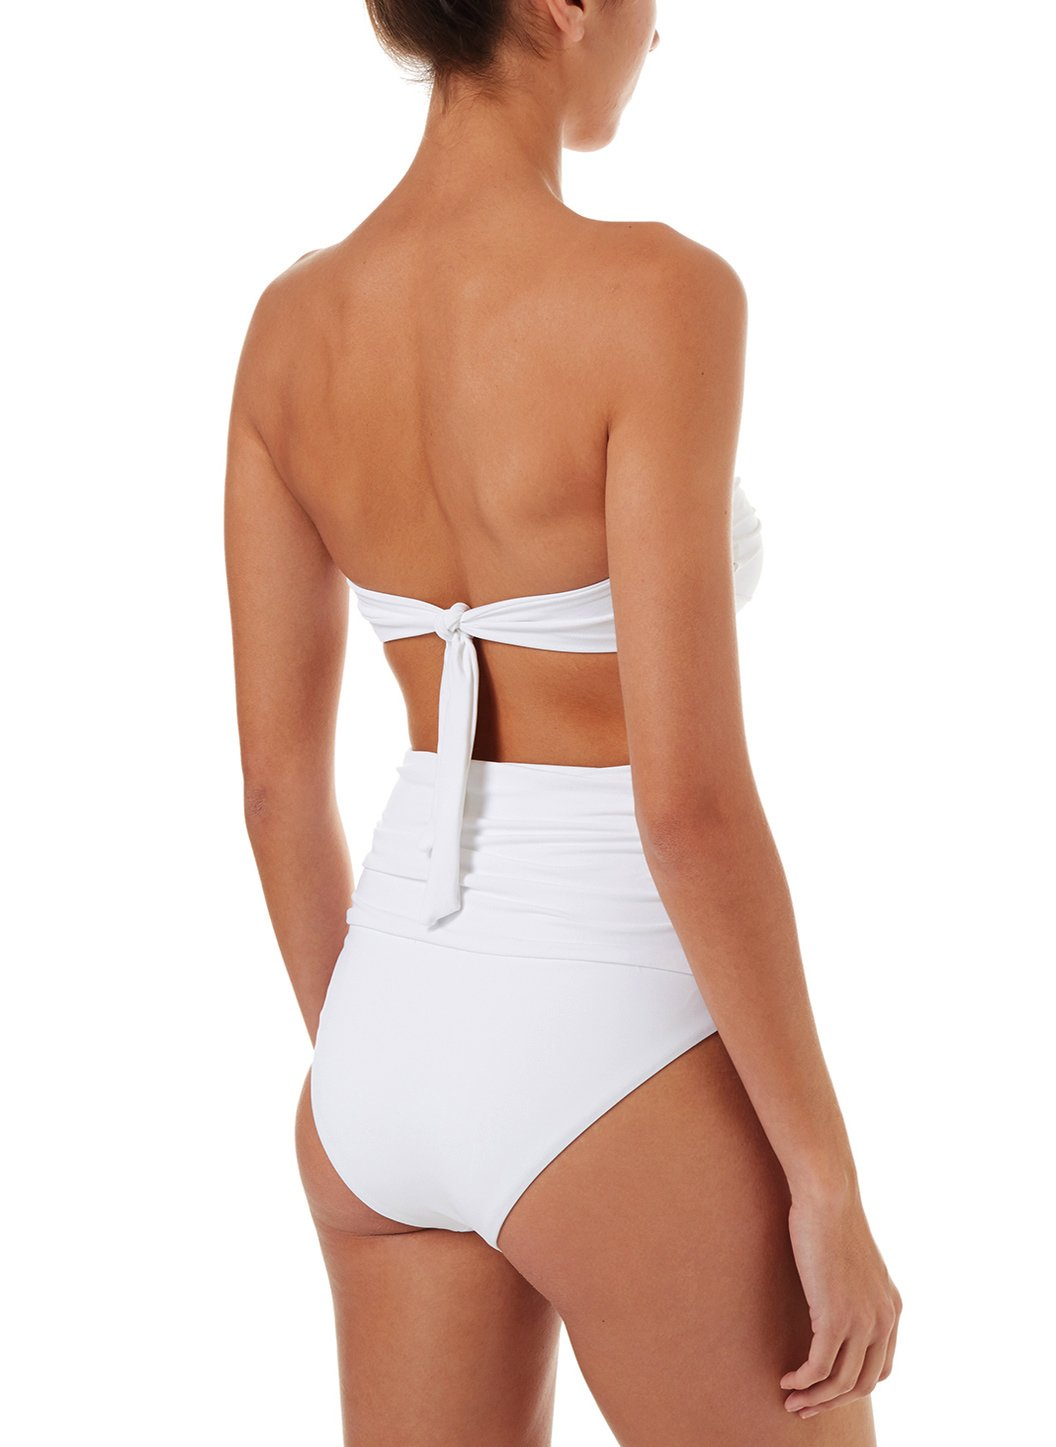 lyon white highwaisted bandeau bikini 2019 B